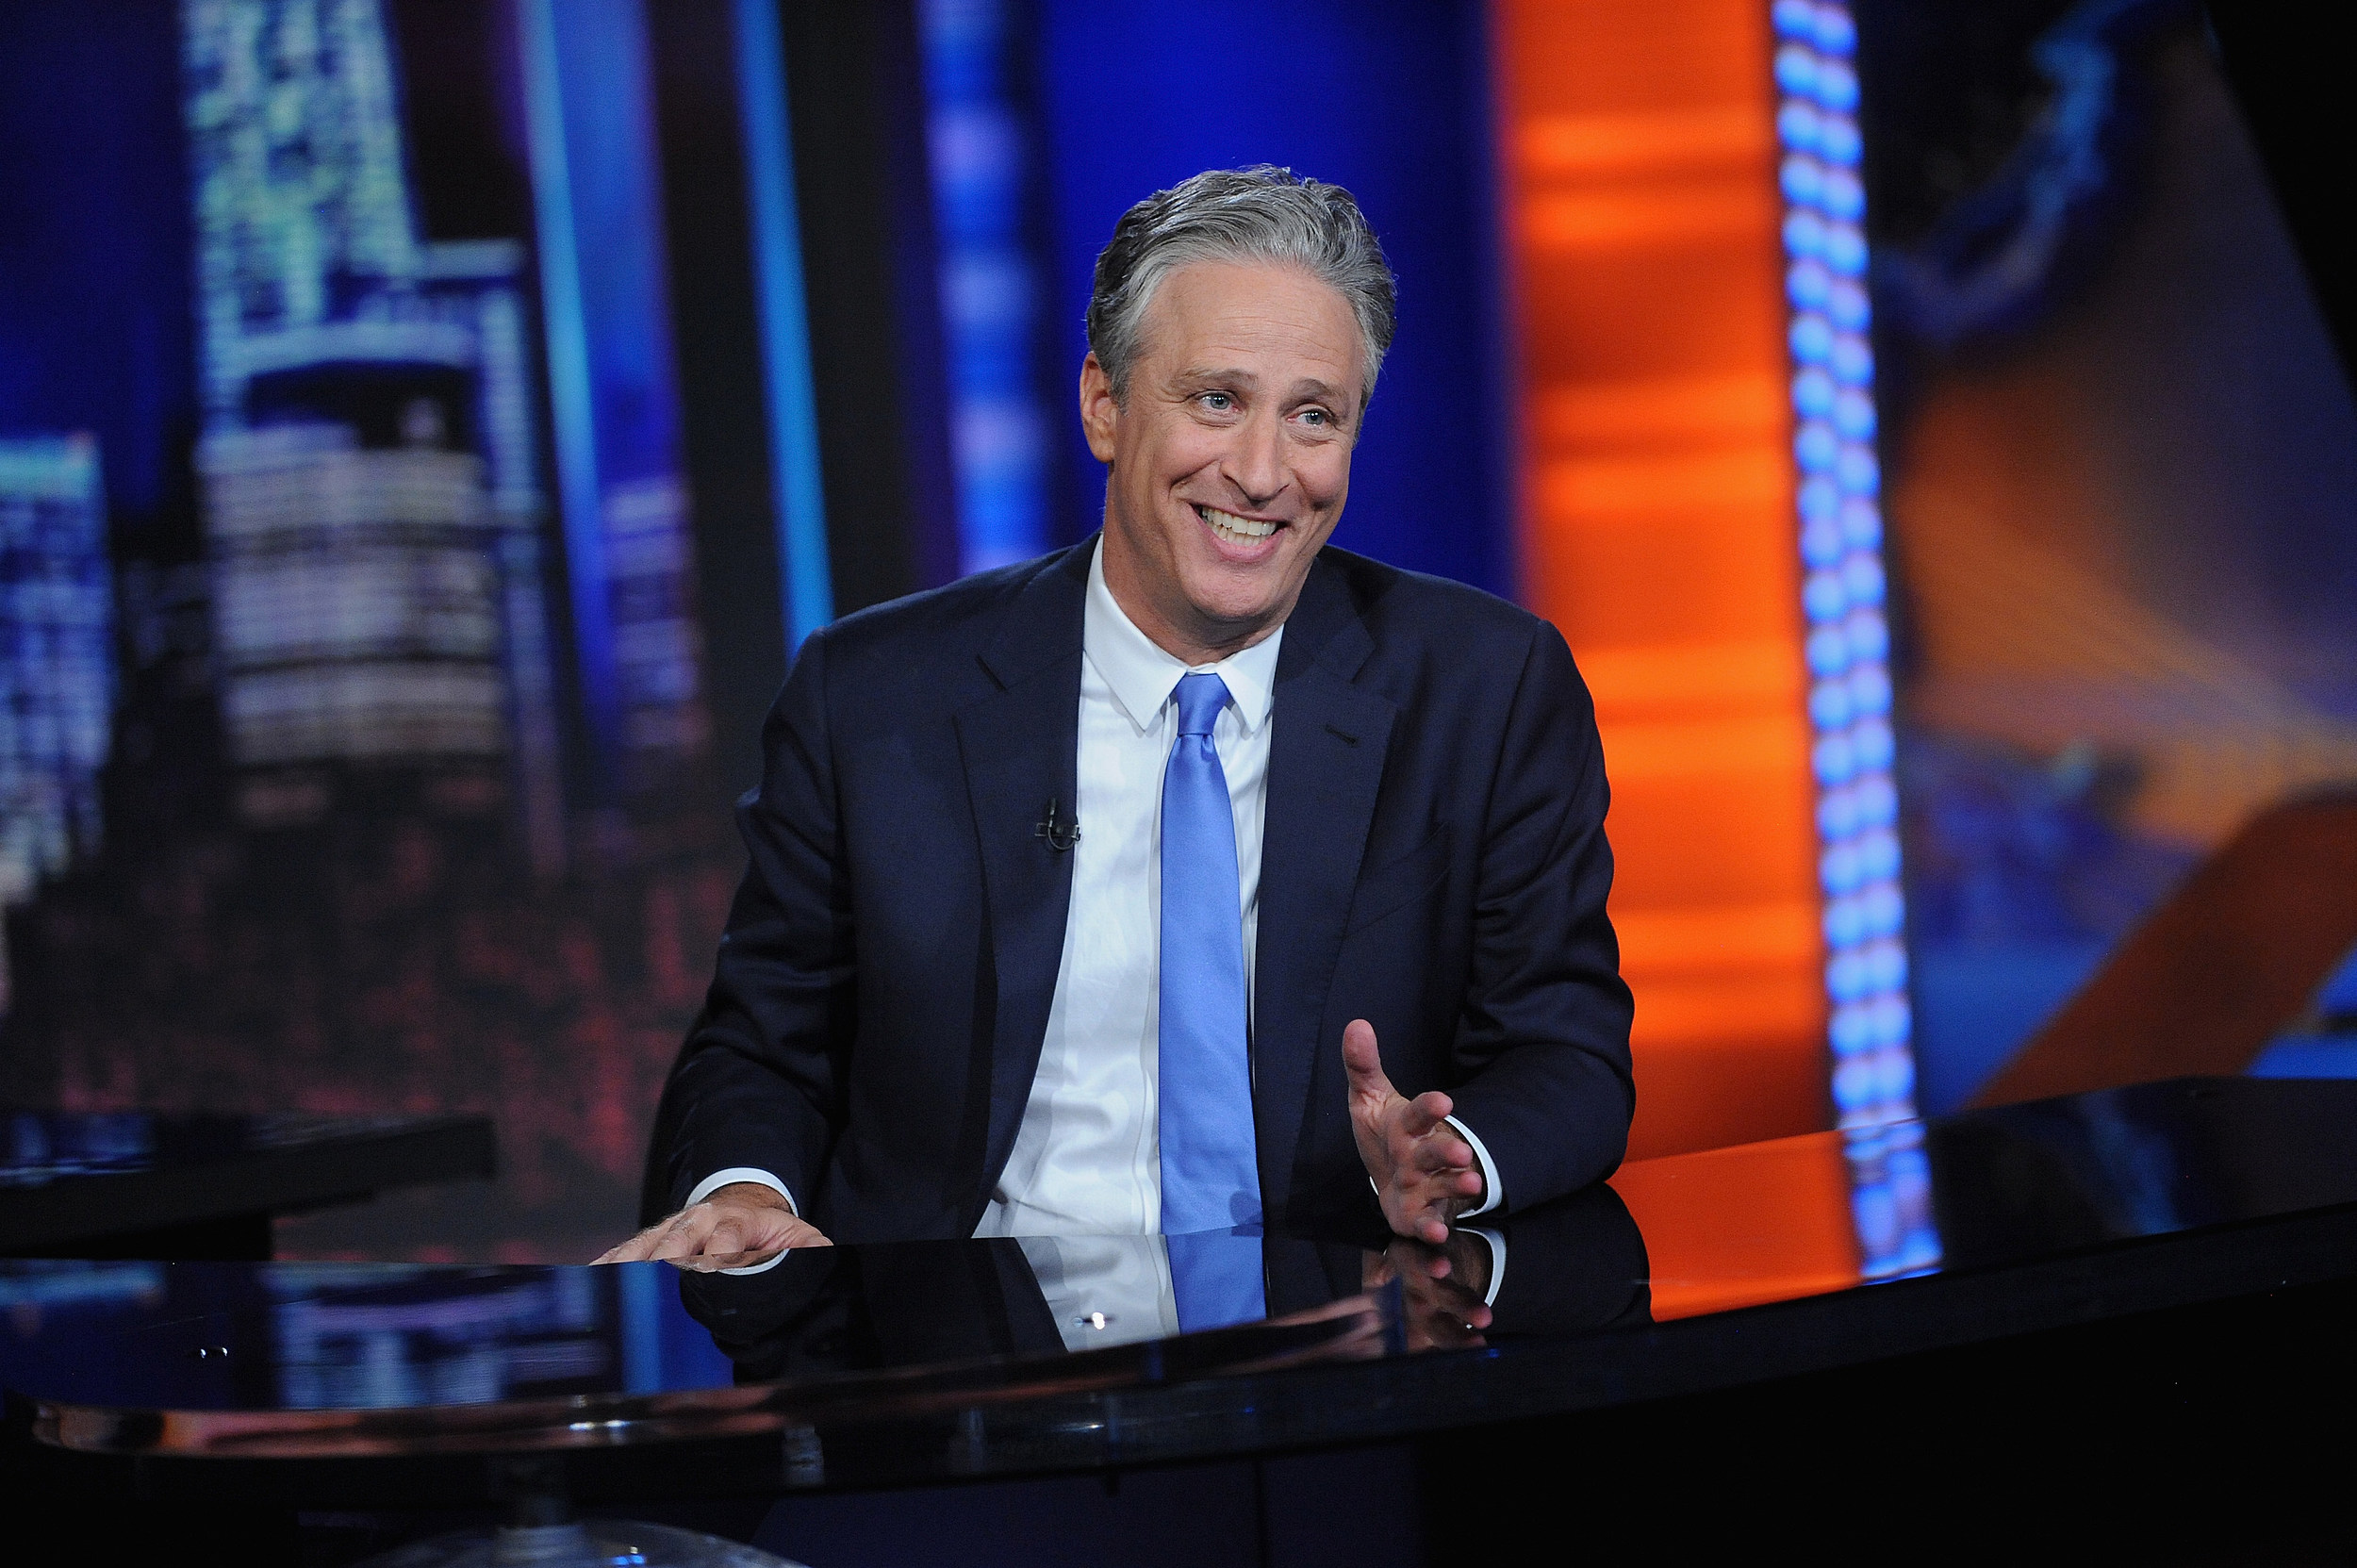 Jon Stewart Bashes Media